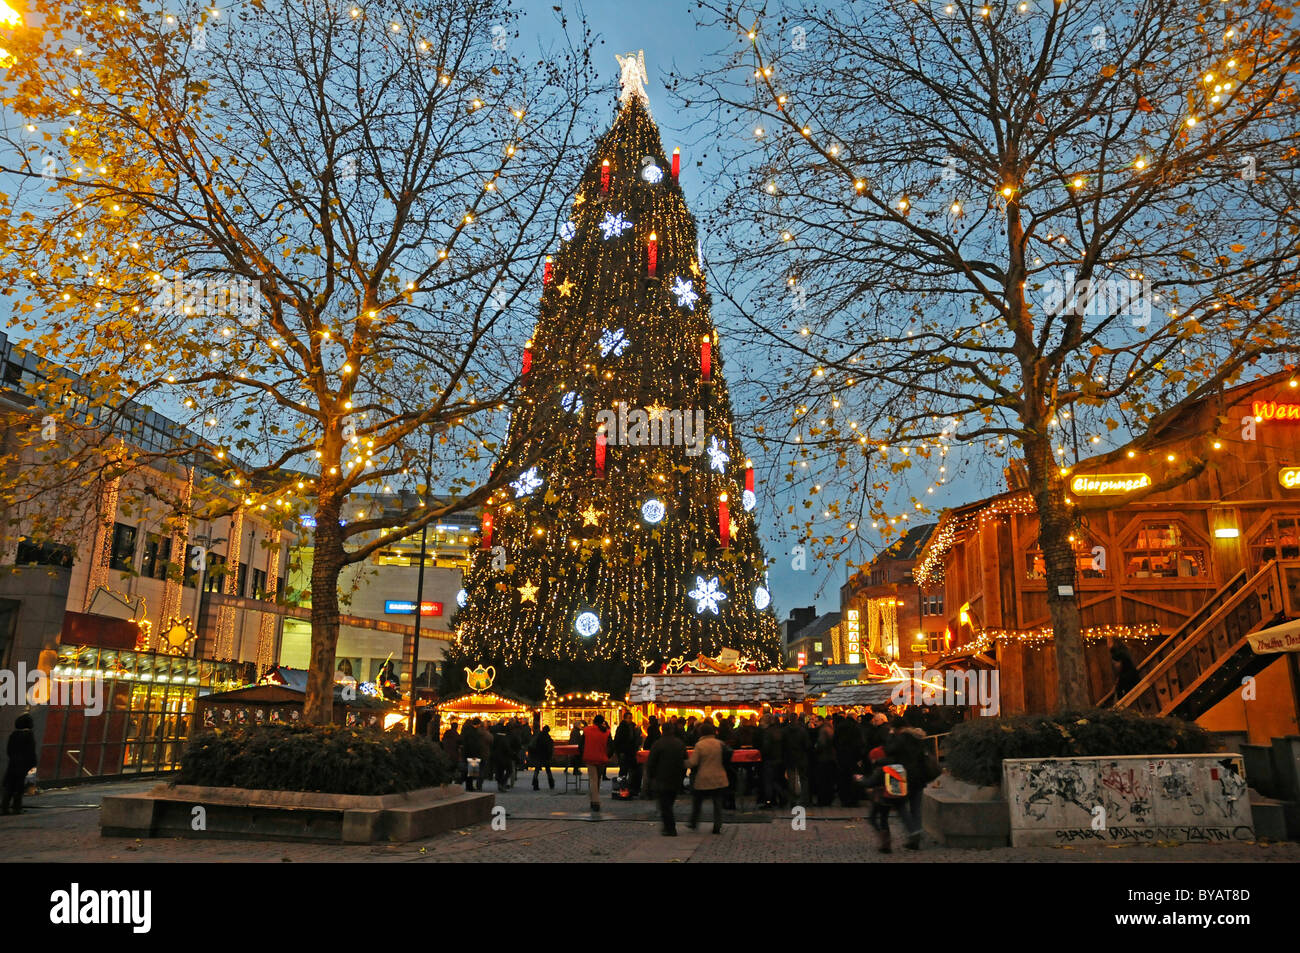 Dortmund Christmas Market High Resolution Stock Photography And Images Alamy